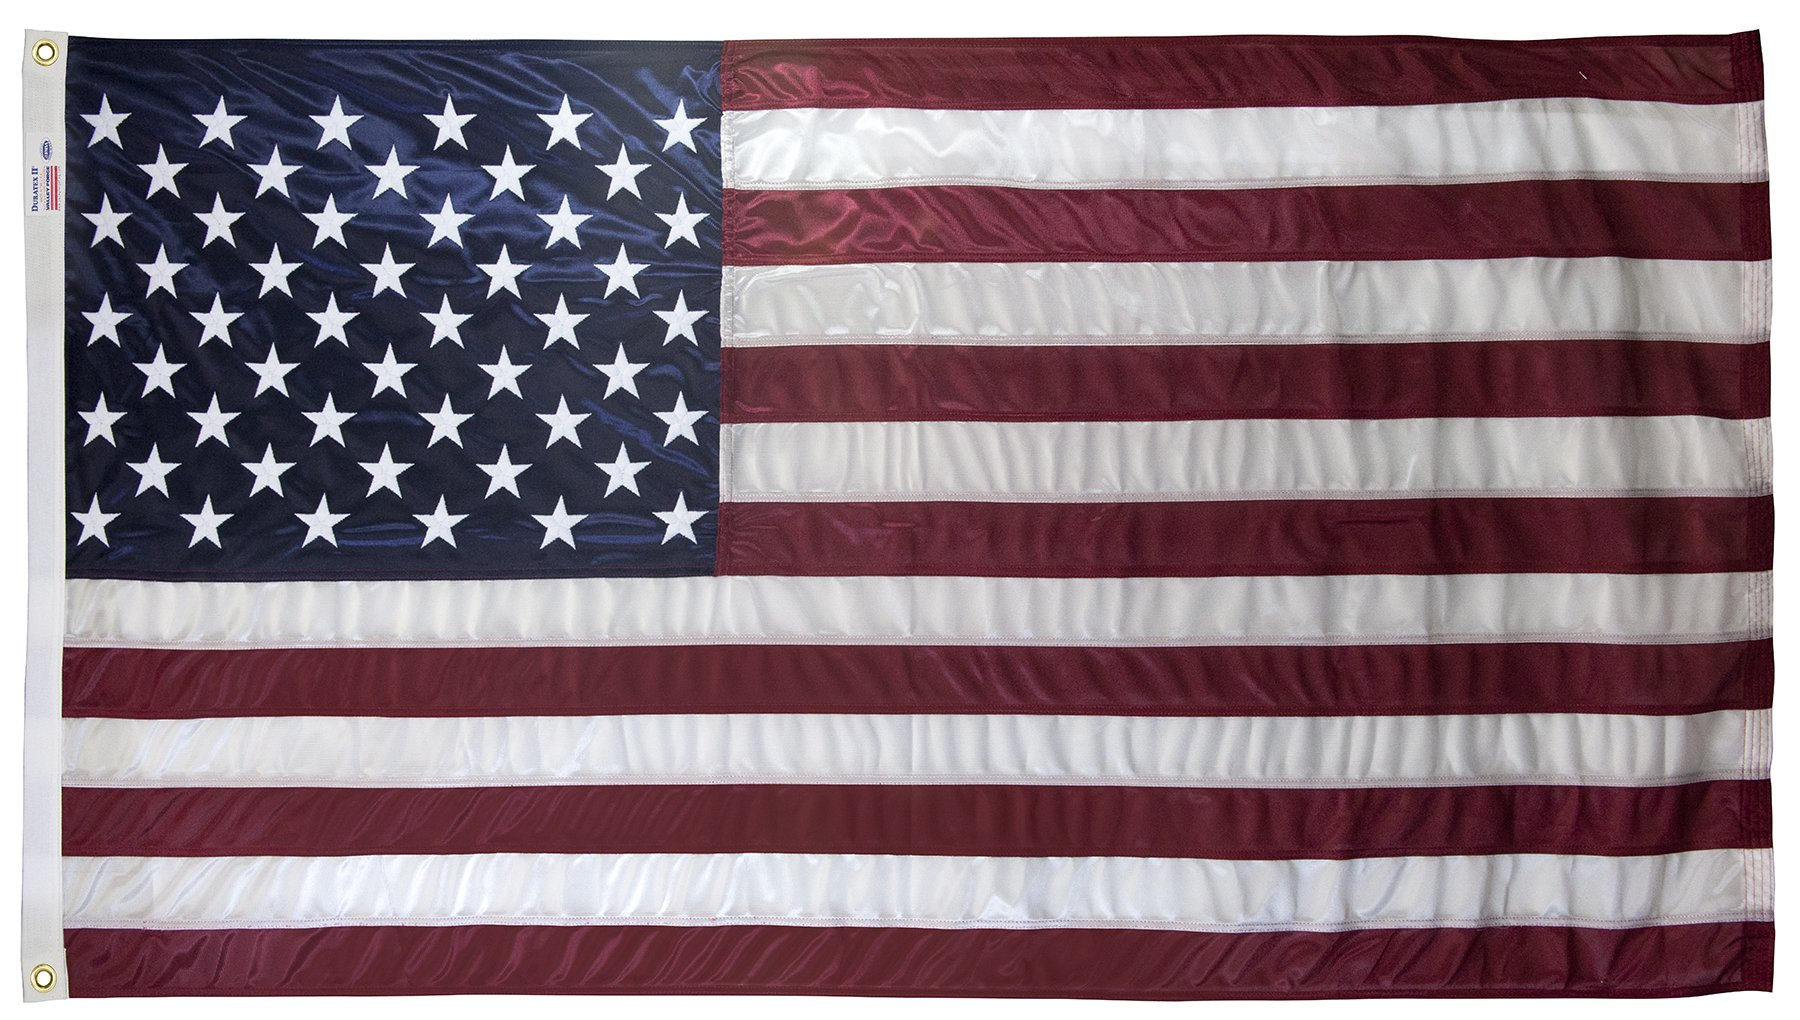 4x6 Foot U.S. American Flag Valley Forge Flag Duratex II Poly Commercial Fully Sewn by WindStrong®